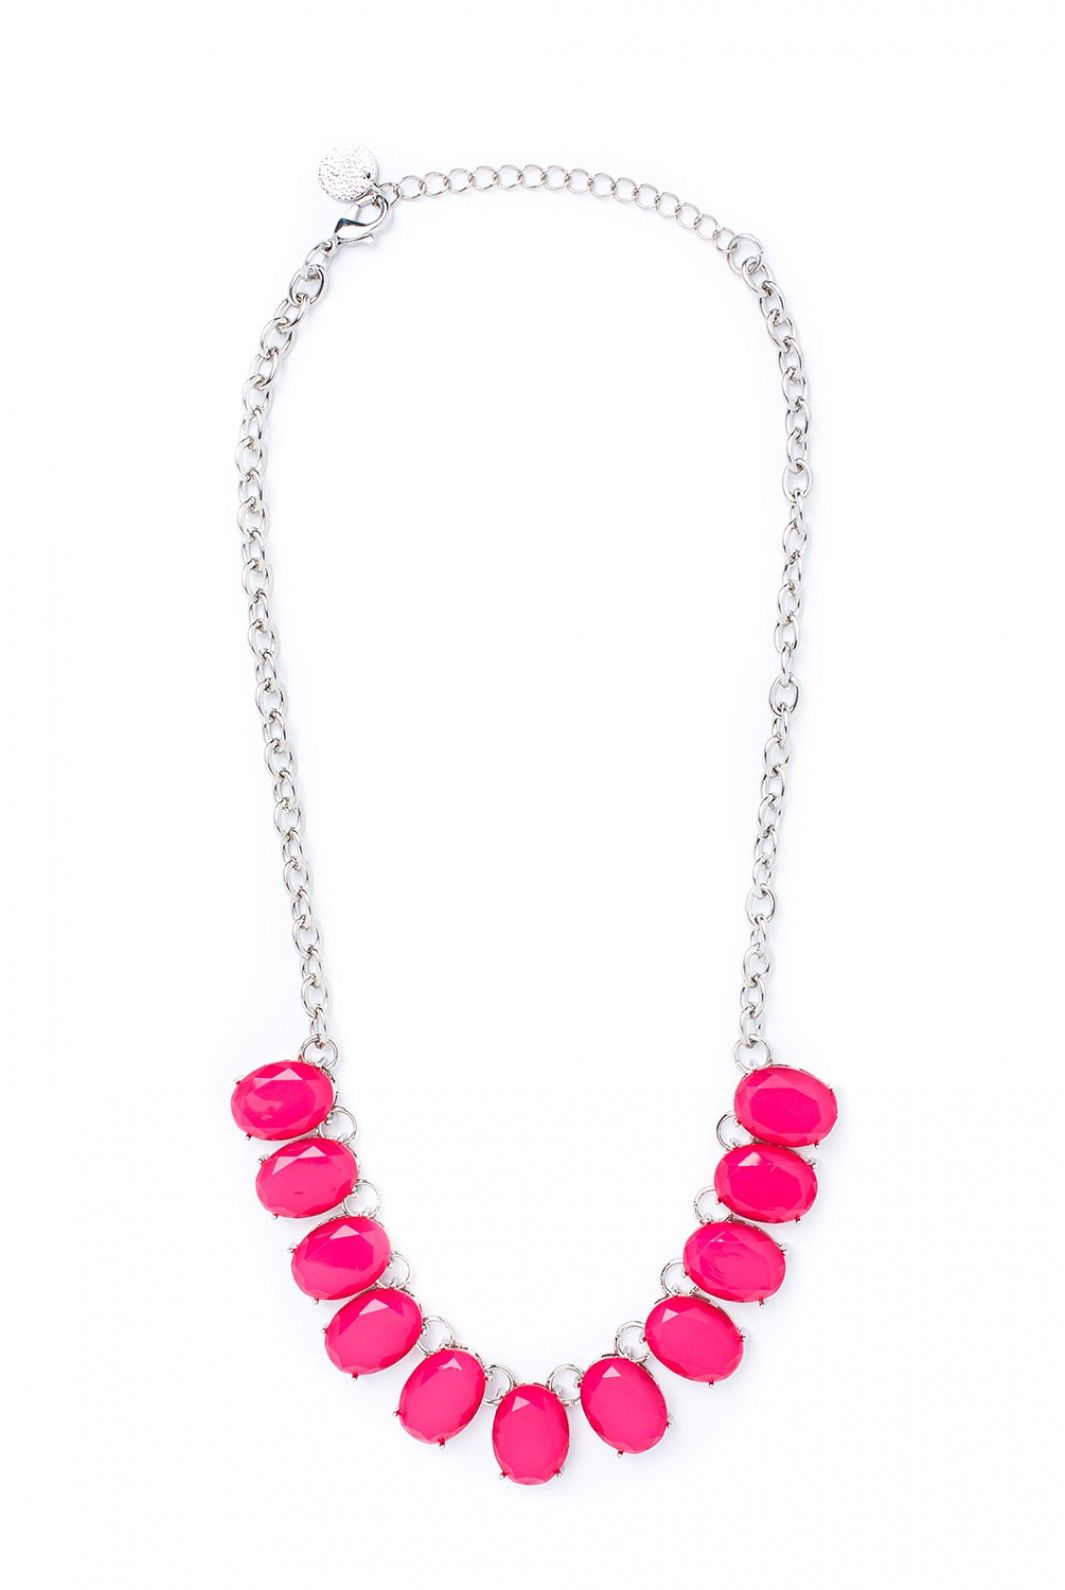 US$19.97 Purest pink is one of your boldest colors and now you have a necklace to match all your daring looks. Sitting high and perfectly centered, your energy will feel perfectly in place with this symmetrical necklace as your compa